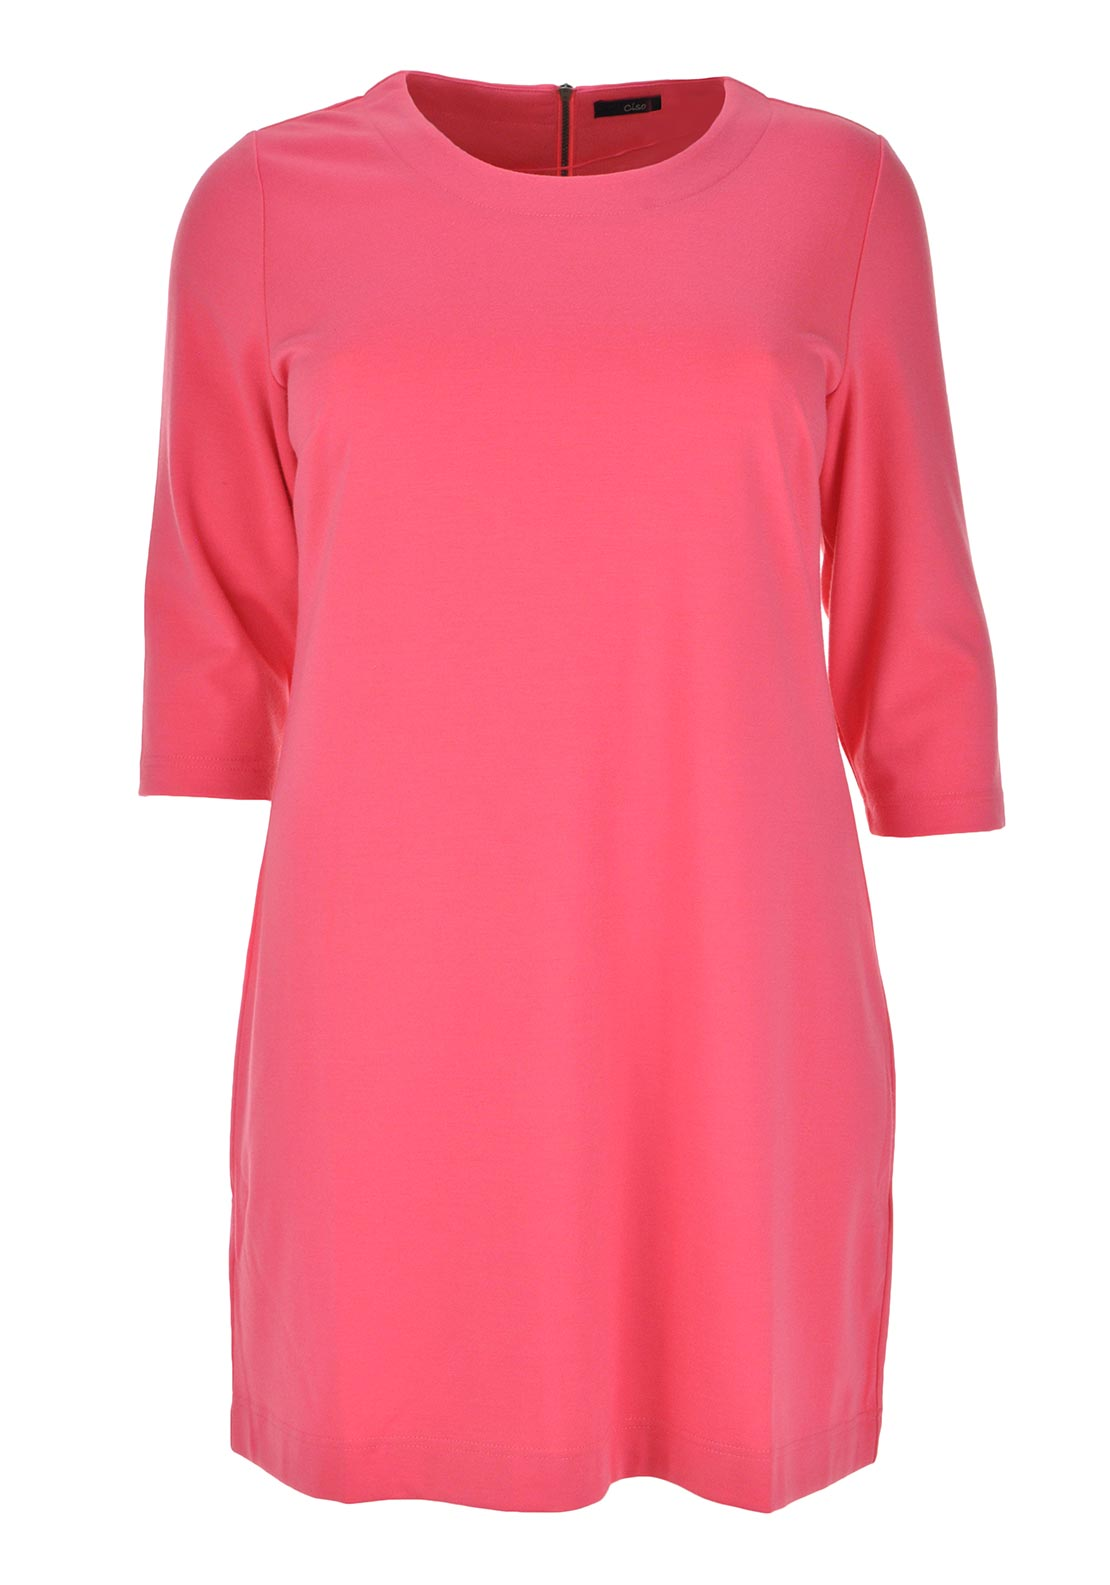 Ciso Cropped Sleeve A-Line Jersey Dress, Coral